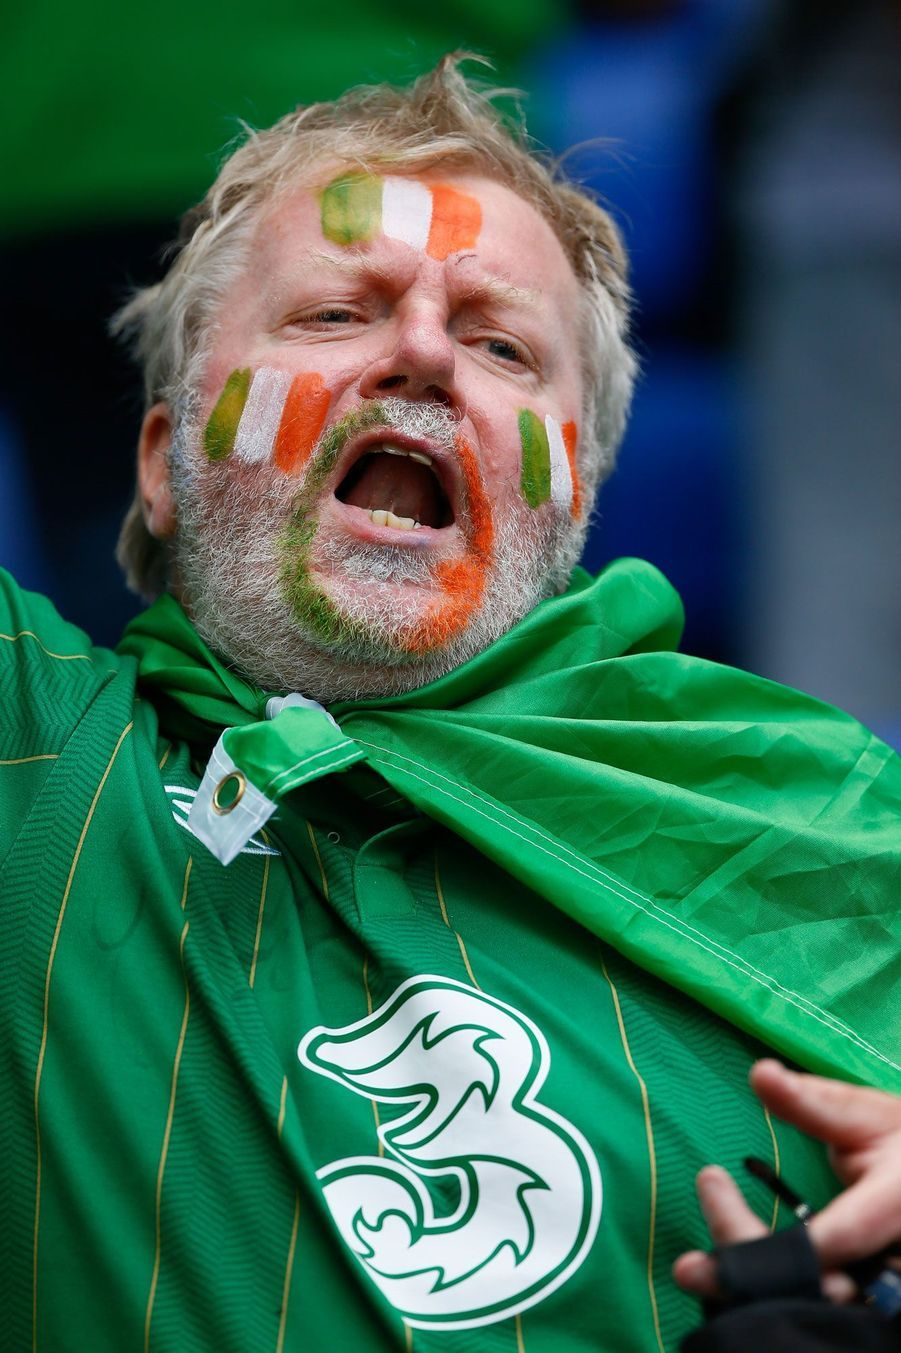 Euro 2016: France-Irlande, le match des supporters